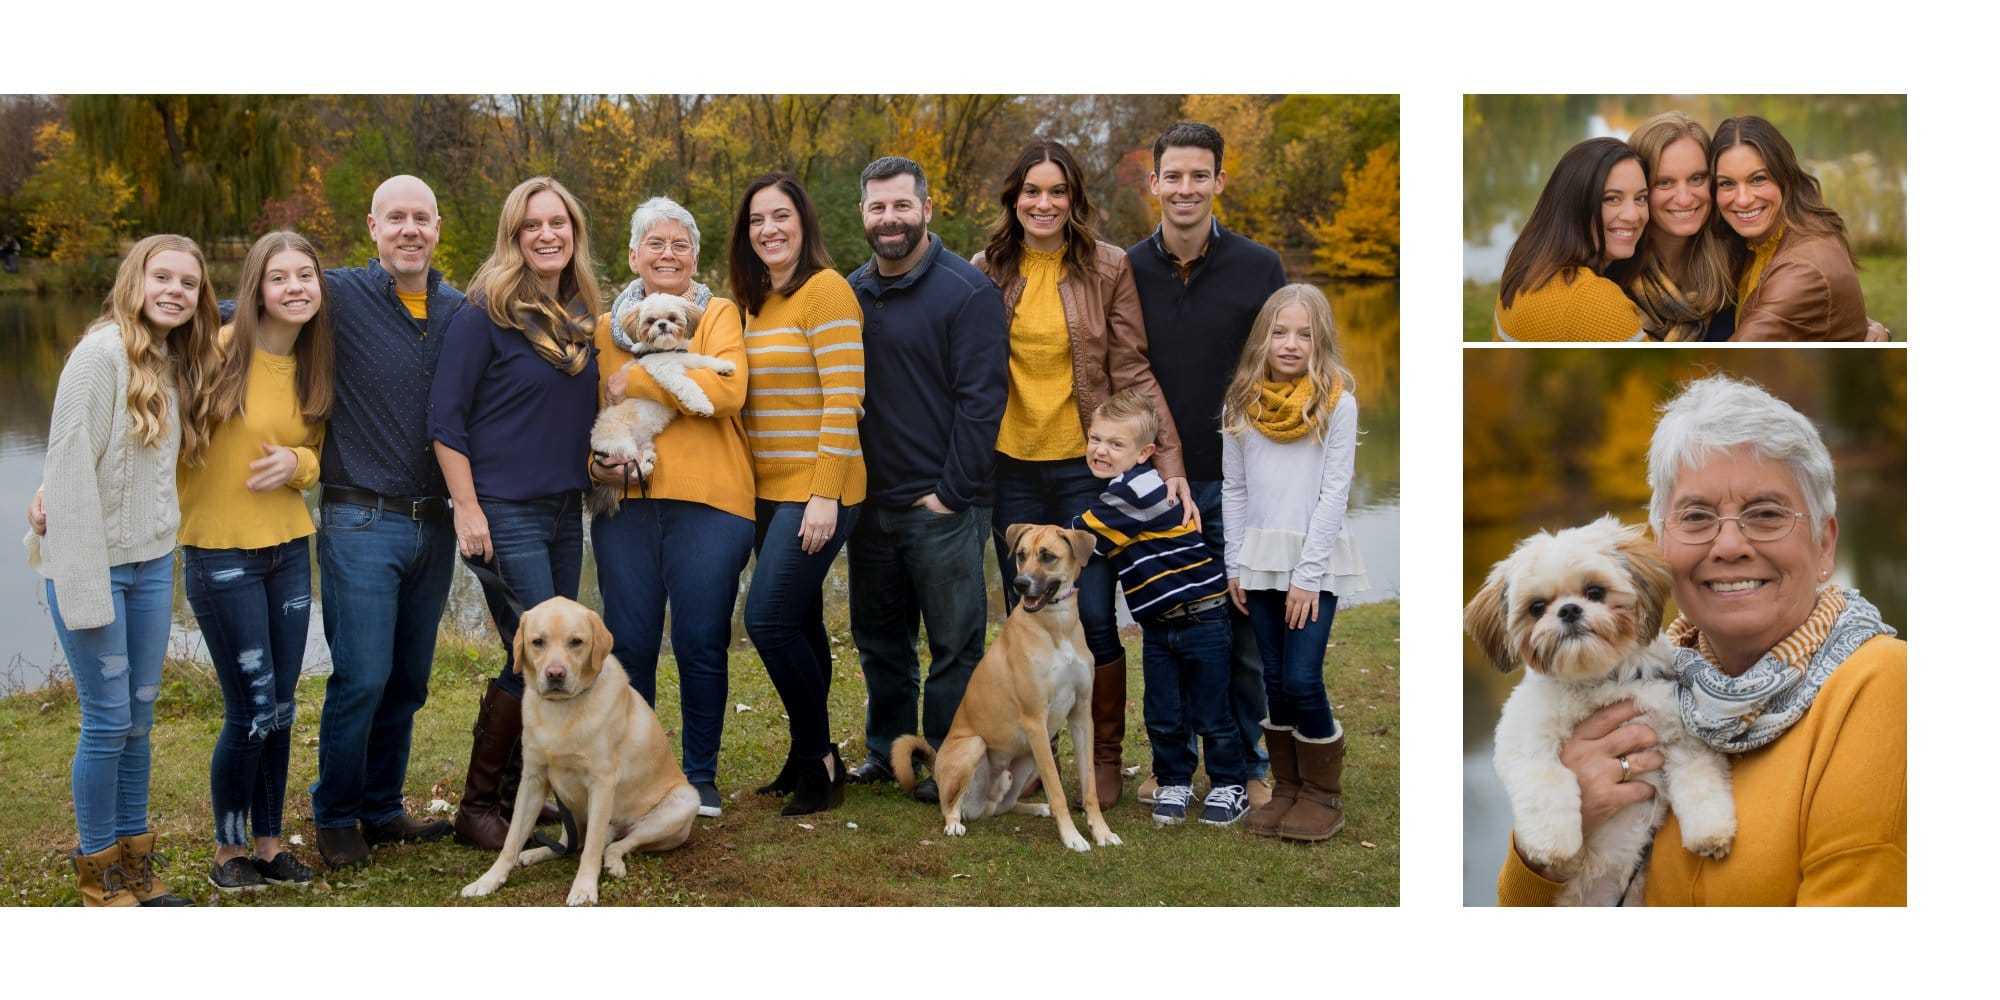 Extended Family pictures with 3 dogs in Elmhurst